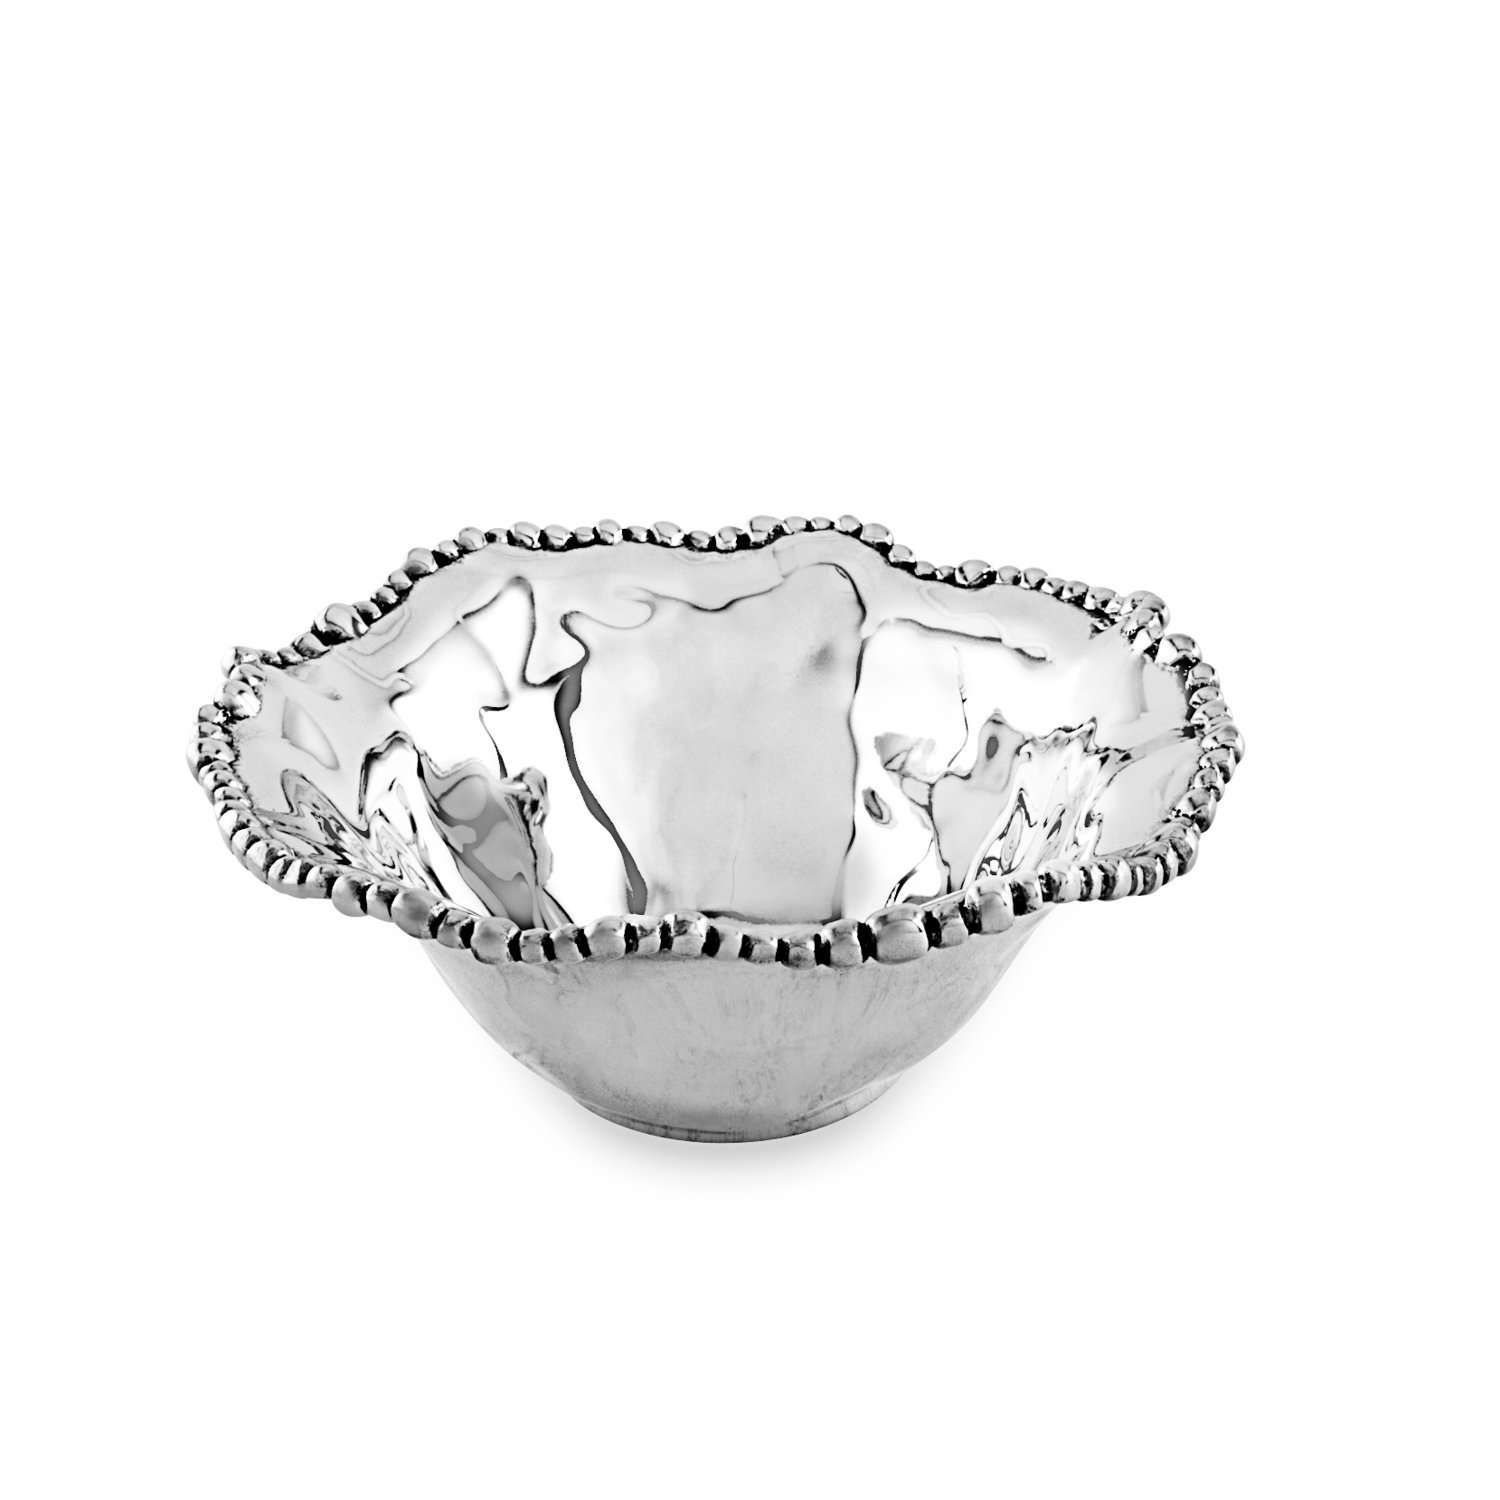 Beatriz Ball Small Organic Pearl Nova Flirty Bowl, Metallic